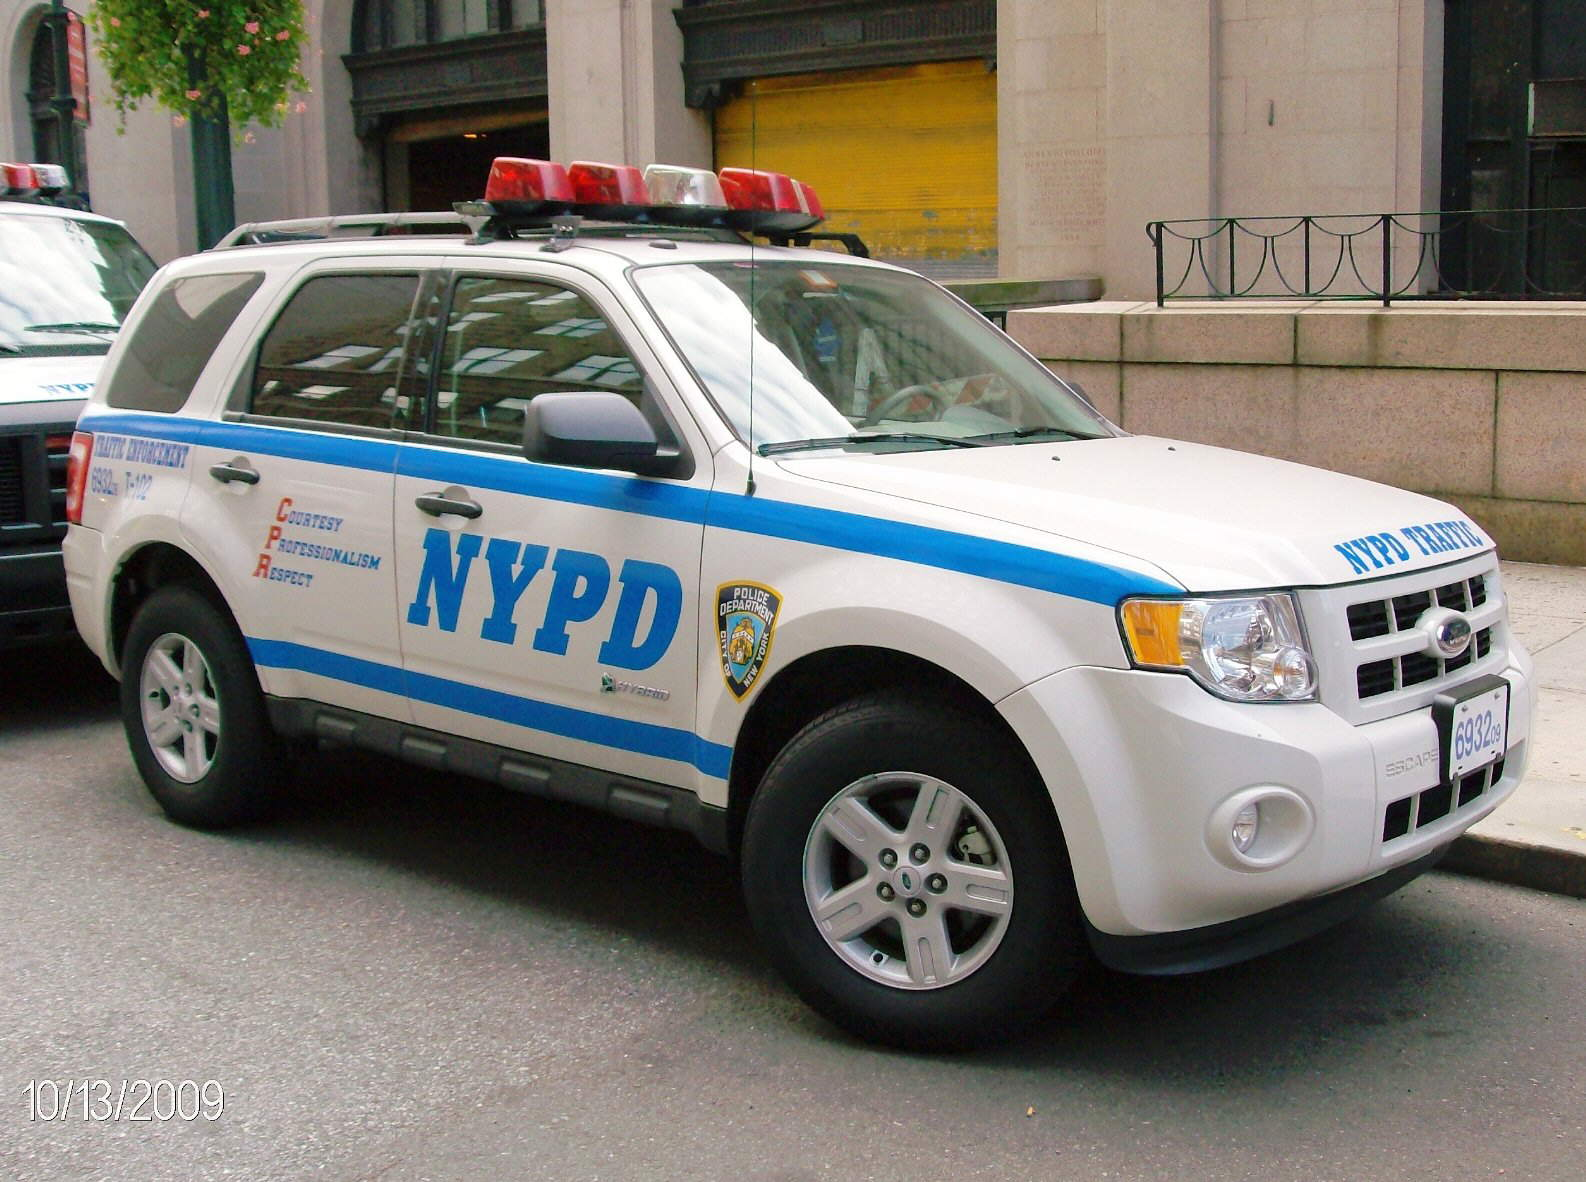 Police Cars For Sale >> Ford Hybrids Tough Enough To Be Police Cars In New York City